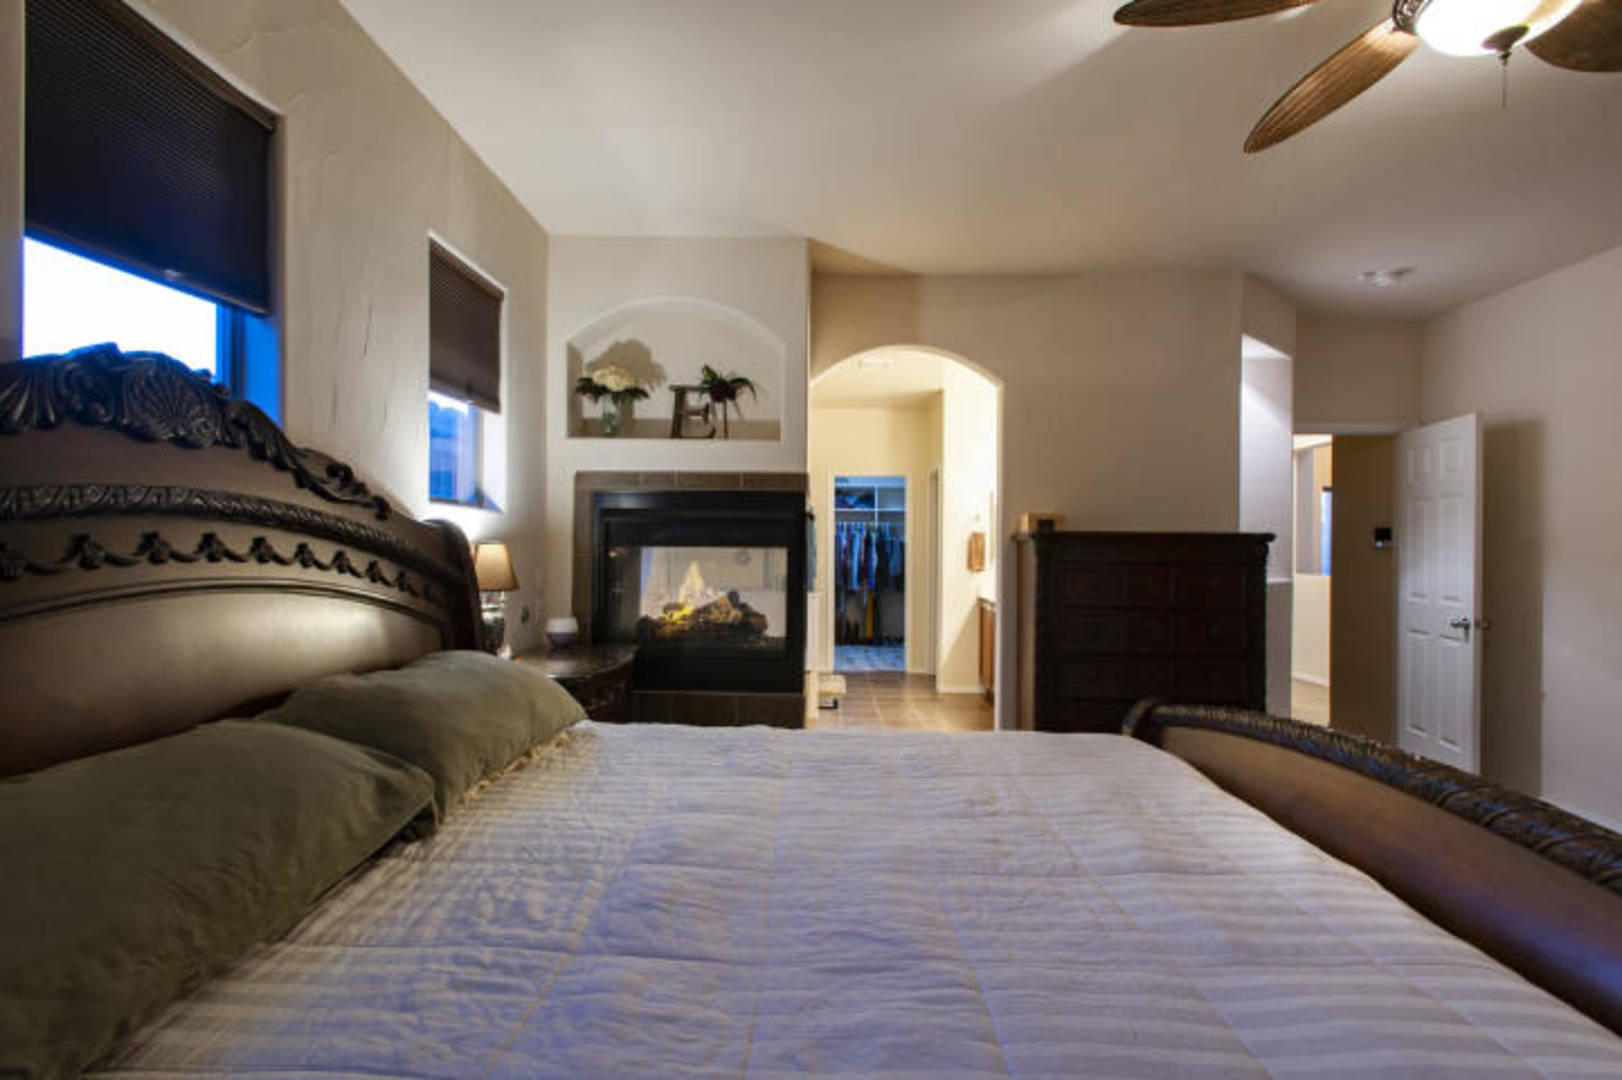 Archived 824 4th Street Northeast Rio Rancho, NM 87124